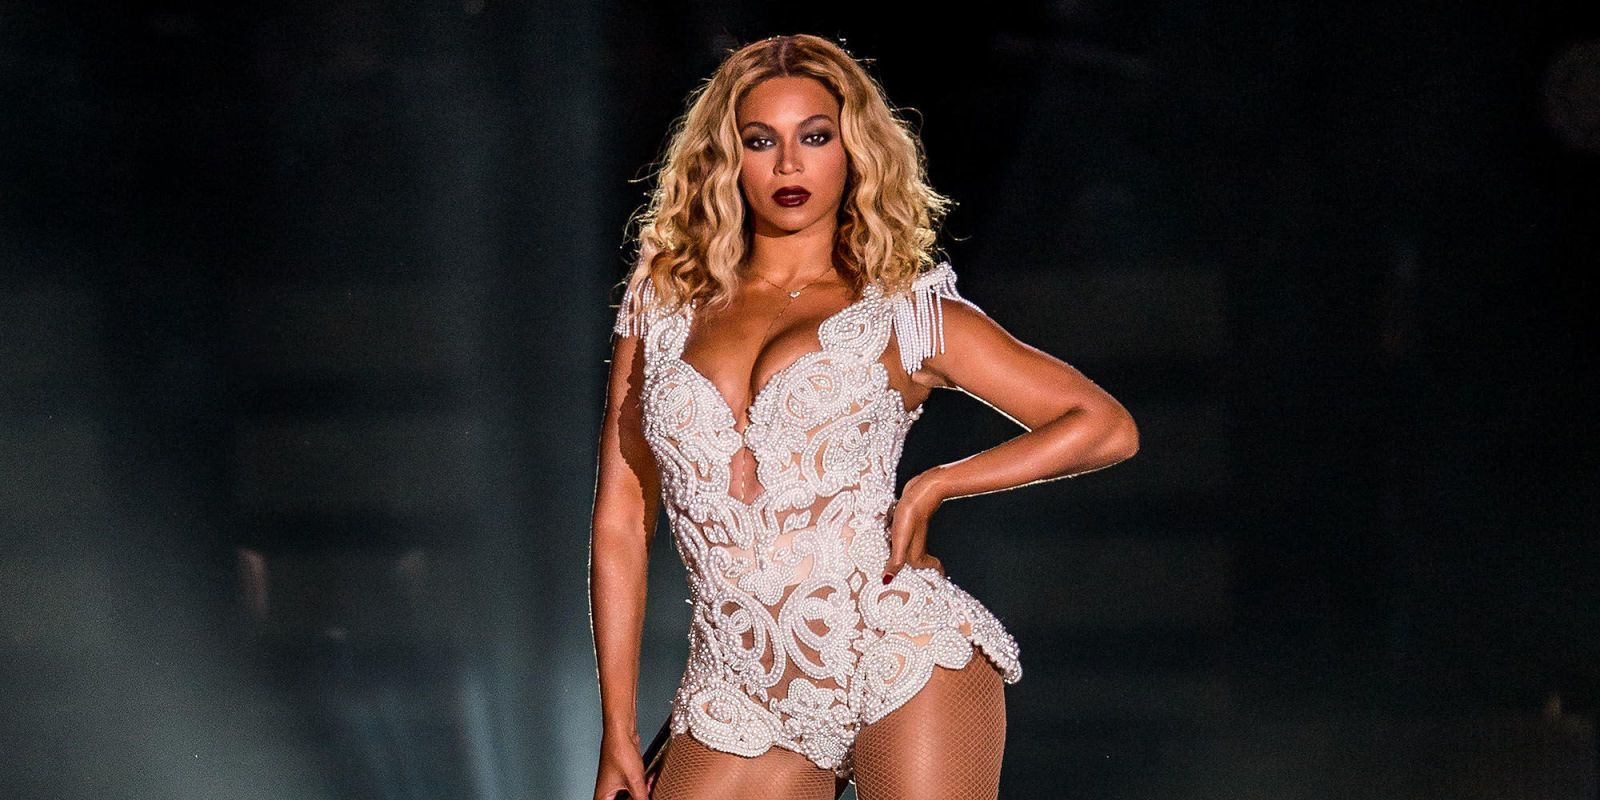 Beyoncé and Solange Dance Like Nobody's Watching at a Missy Elliott Concert